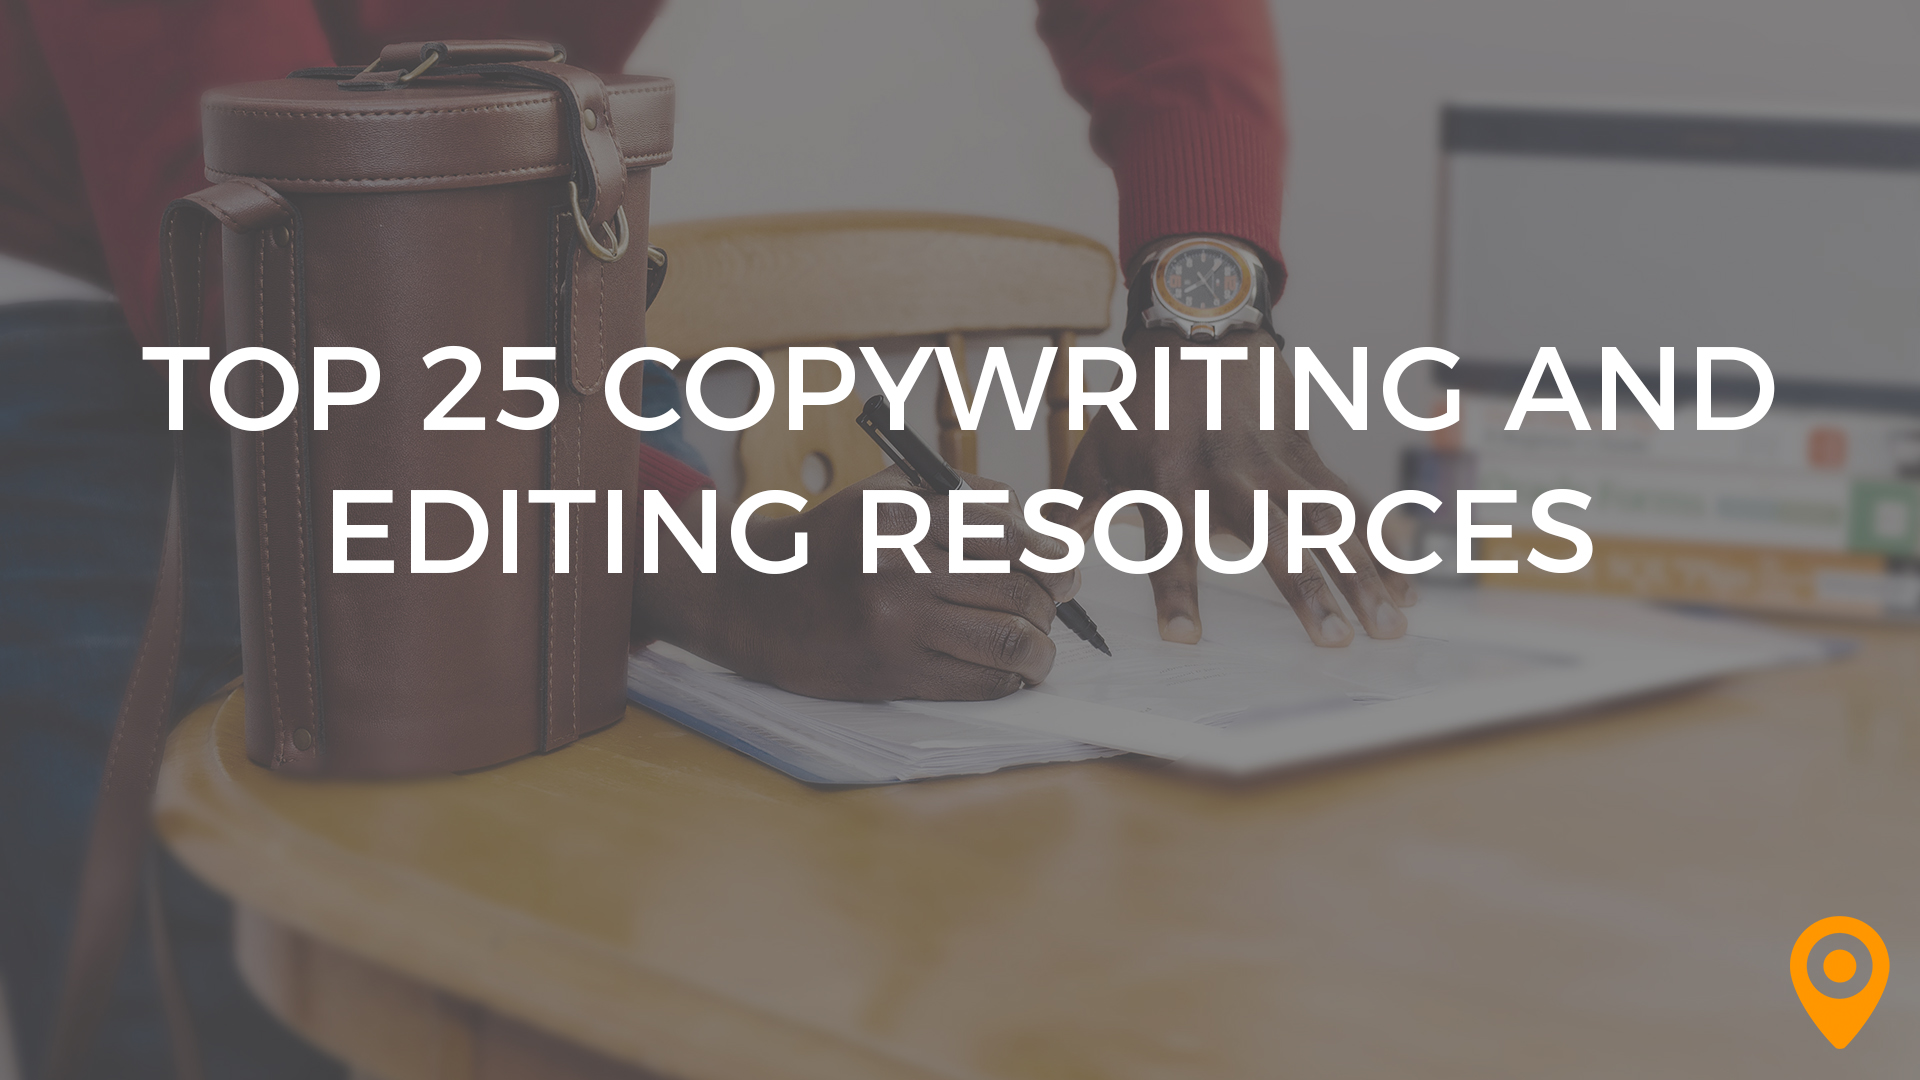 Top 25 copywriting and editing resources